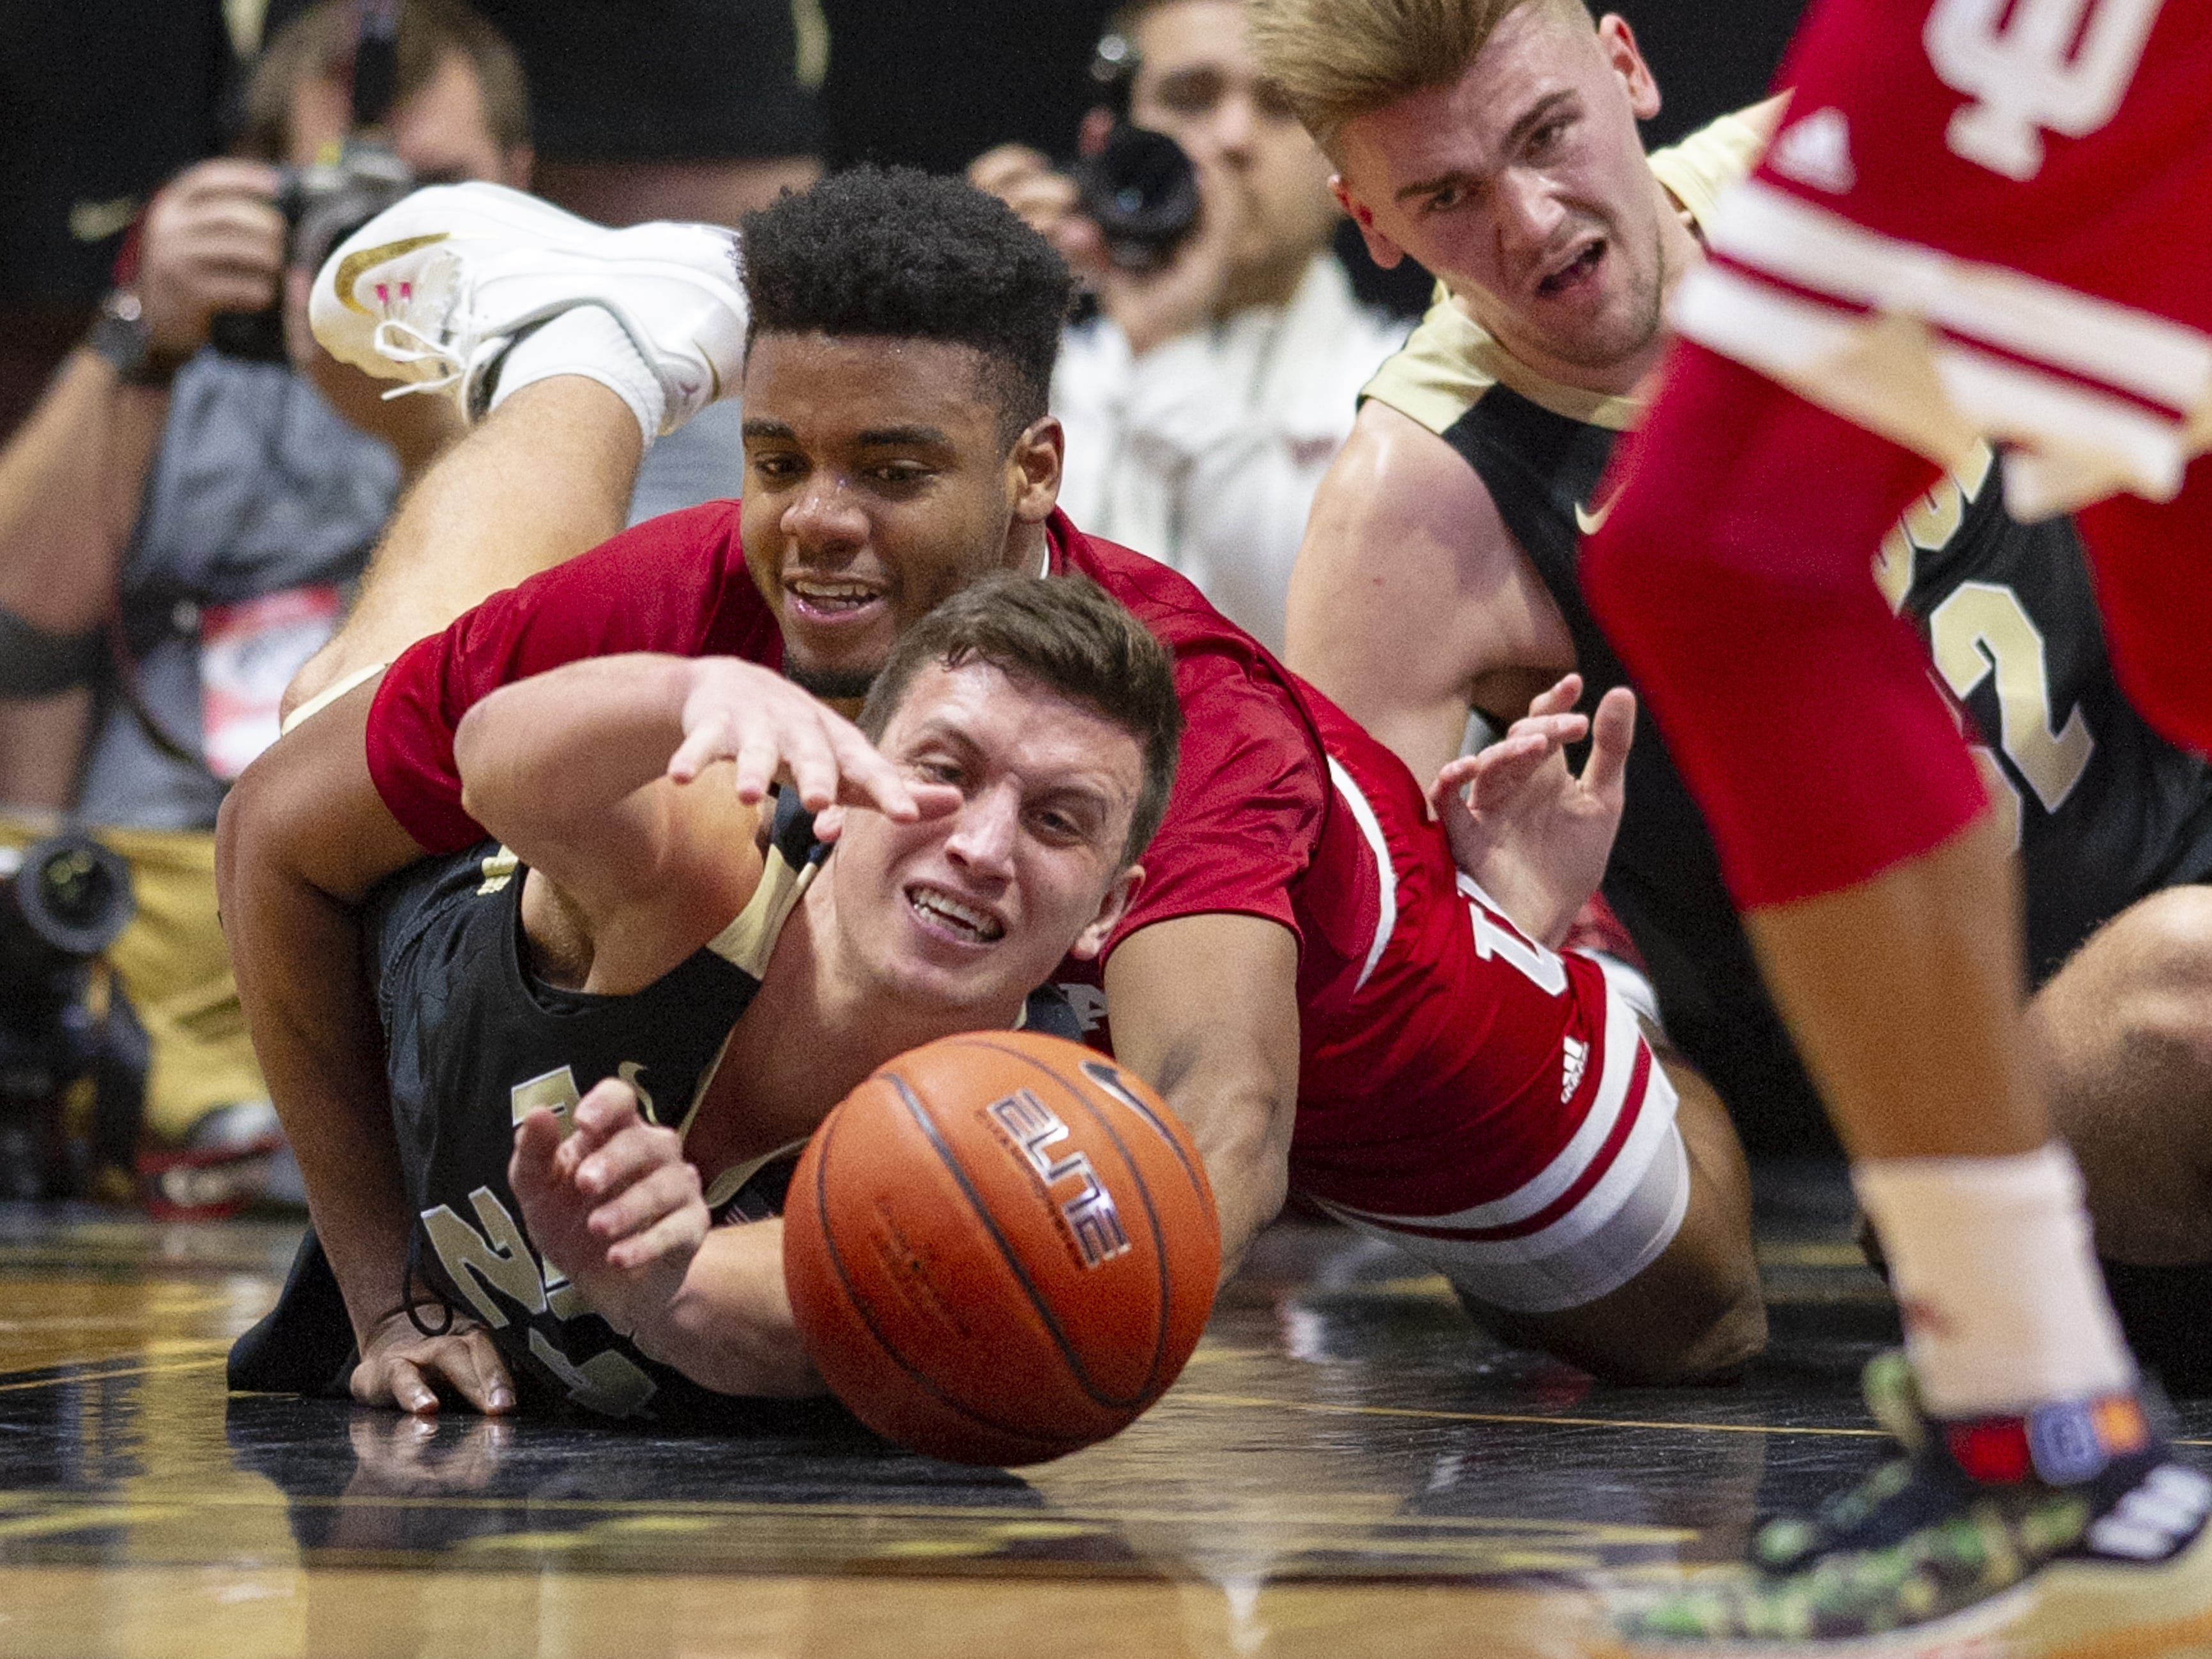 Purdue Boilermakers forward Grady Eifert (24) and Indiana Hoosiers forward Juwan Morgan (13) battle for a loose ball during the second half of action.